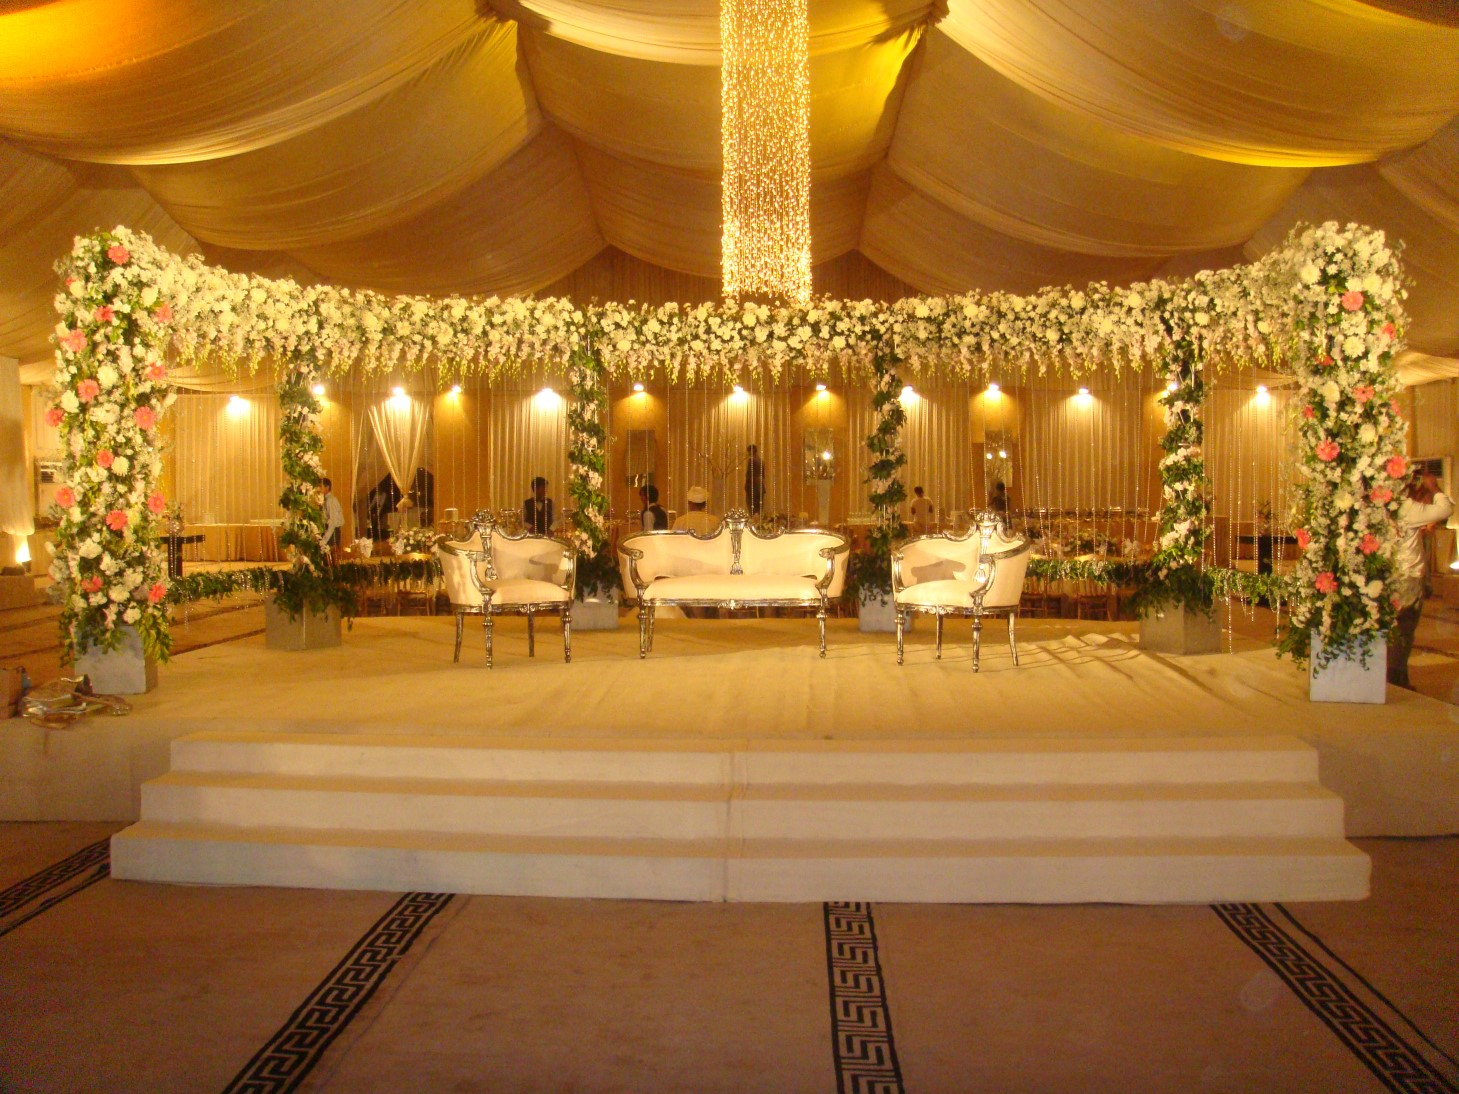 Decoration Image Of About Marriage Marriage Decoration Photos 2013 Marriage Stage Decoration Ideas 2014